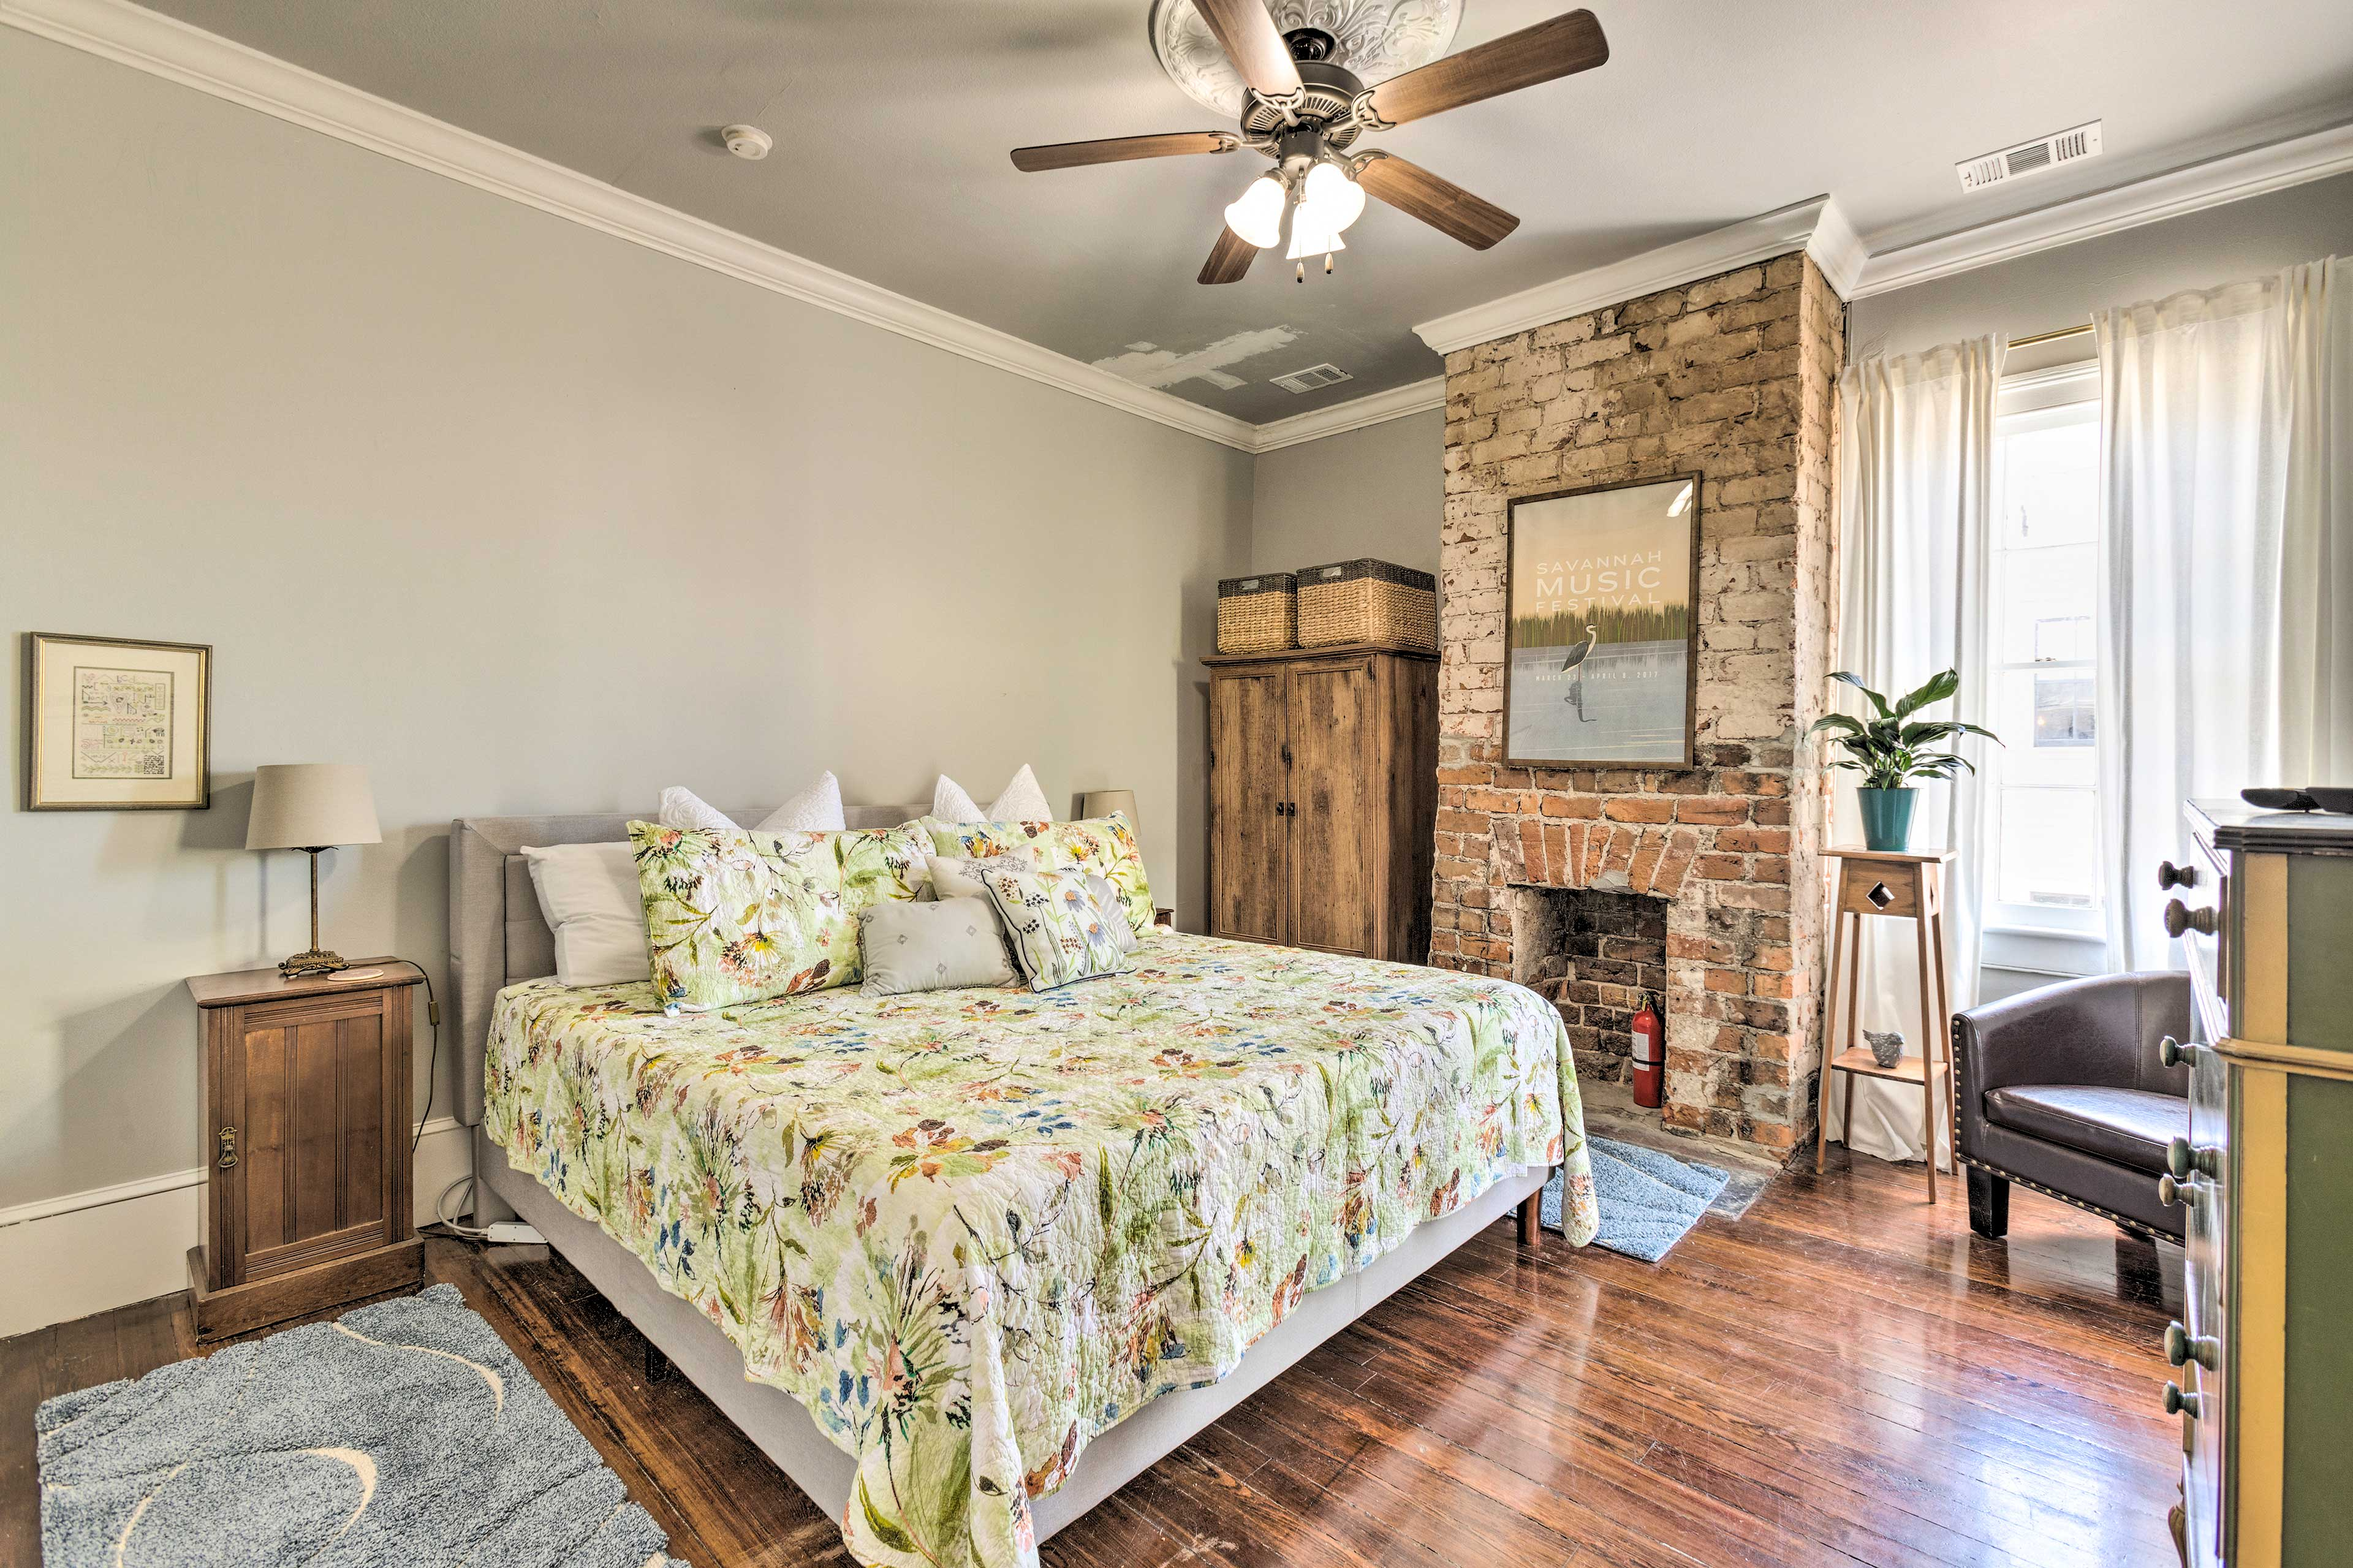 The master bedroom hosts a king-sized bed and tasteful decor.